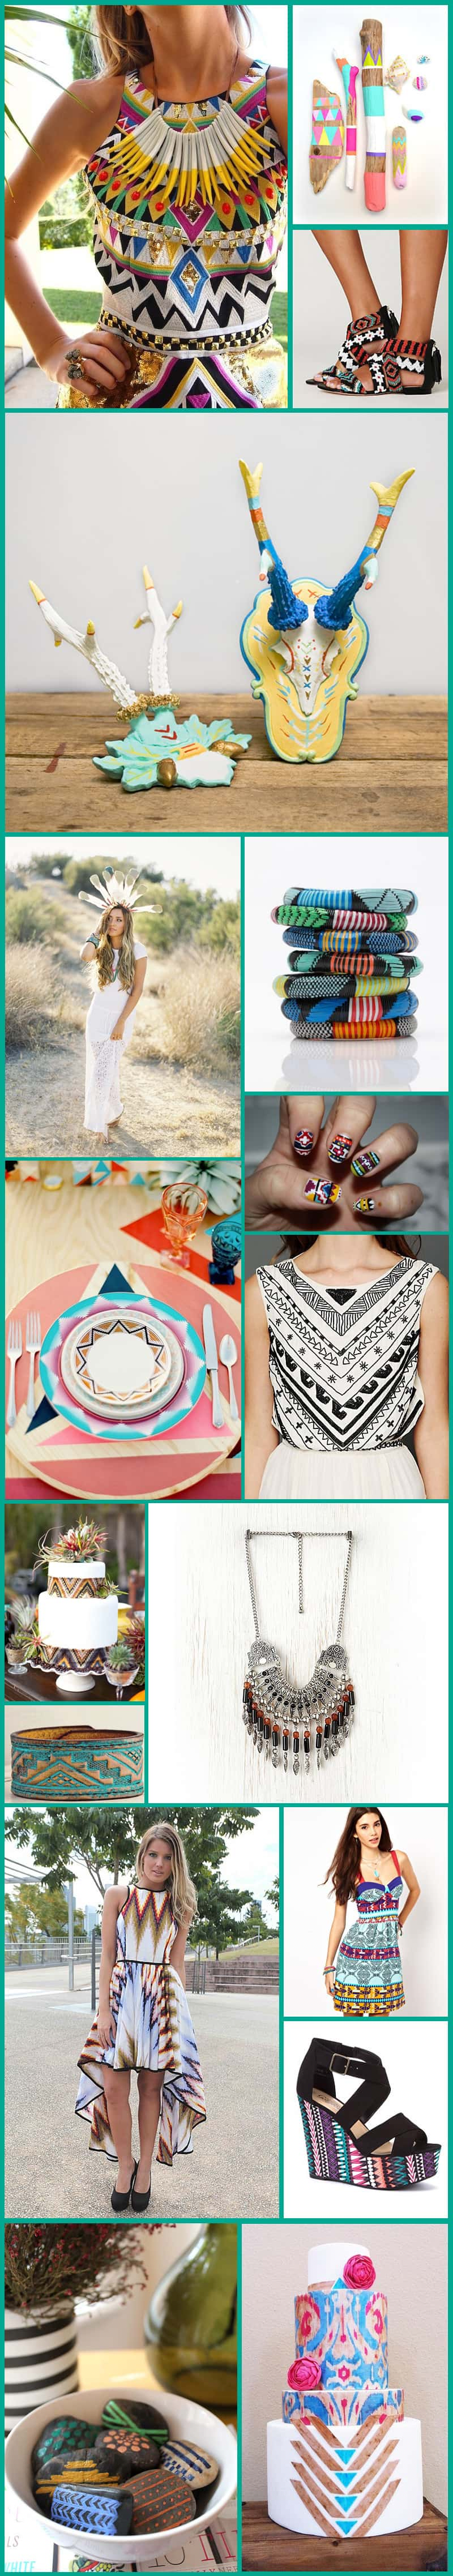 Aztec Inspiration Board